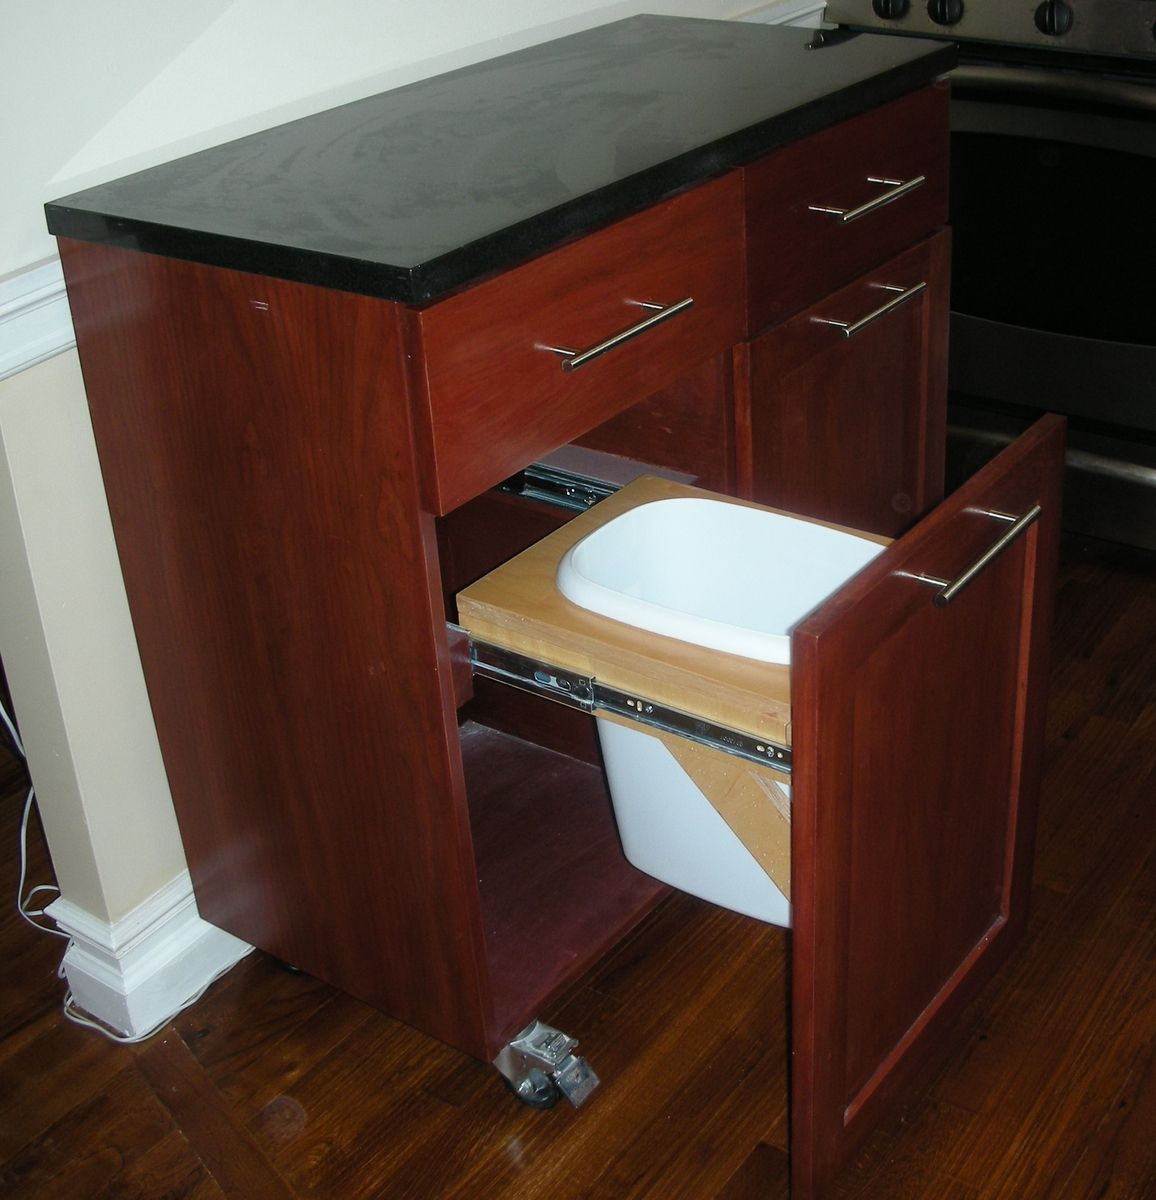 Hand Crafted Mobile Kitchen Island by Hammer Time Studios